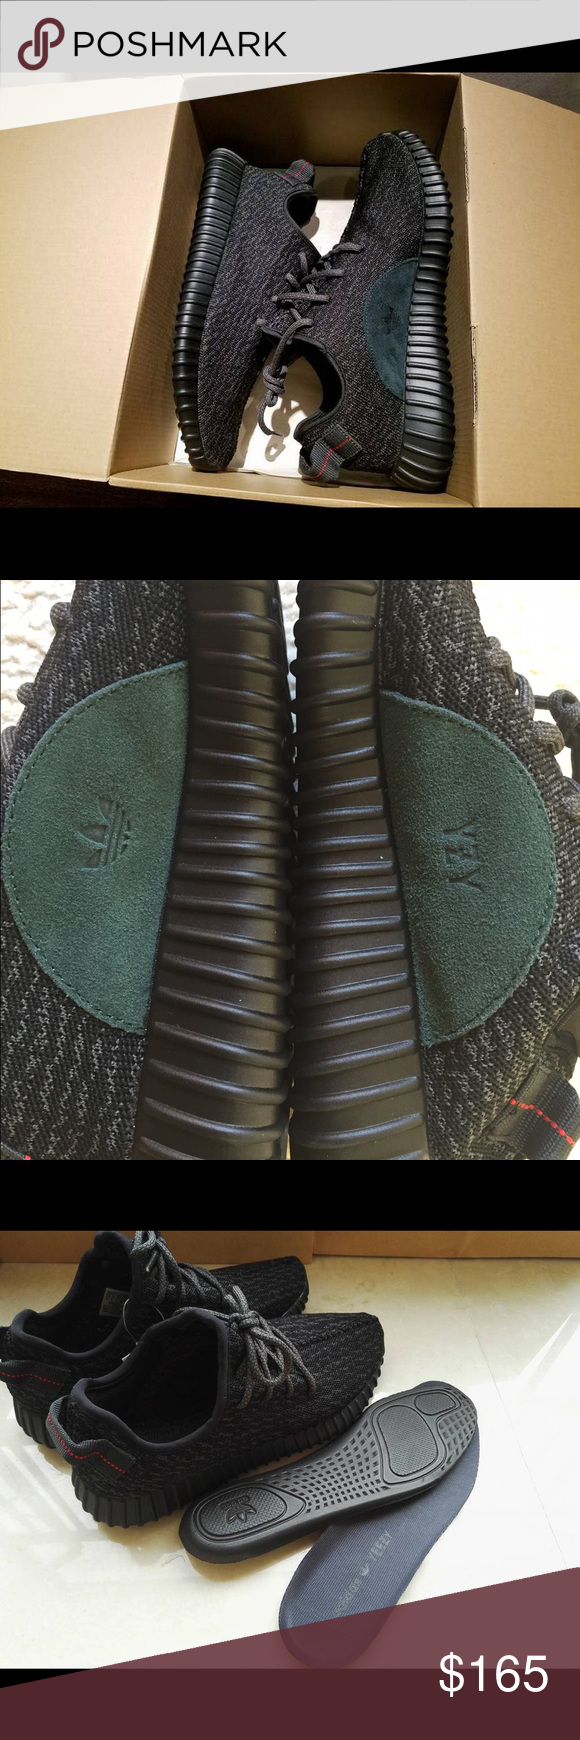 eac68465a80a5 NEW Adidas Yeezy Boost 350 Pirate Black Men Size Up for sale brand New Adidas  Yeezy